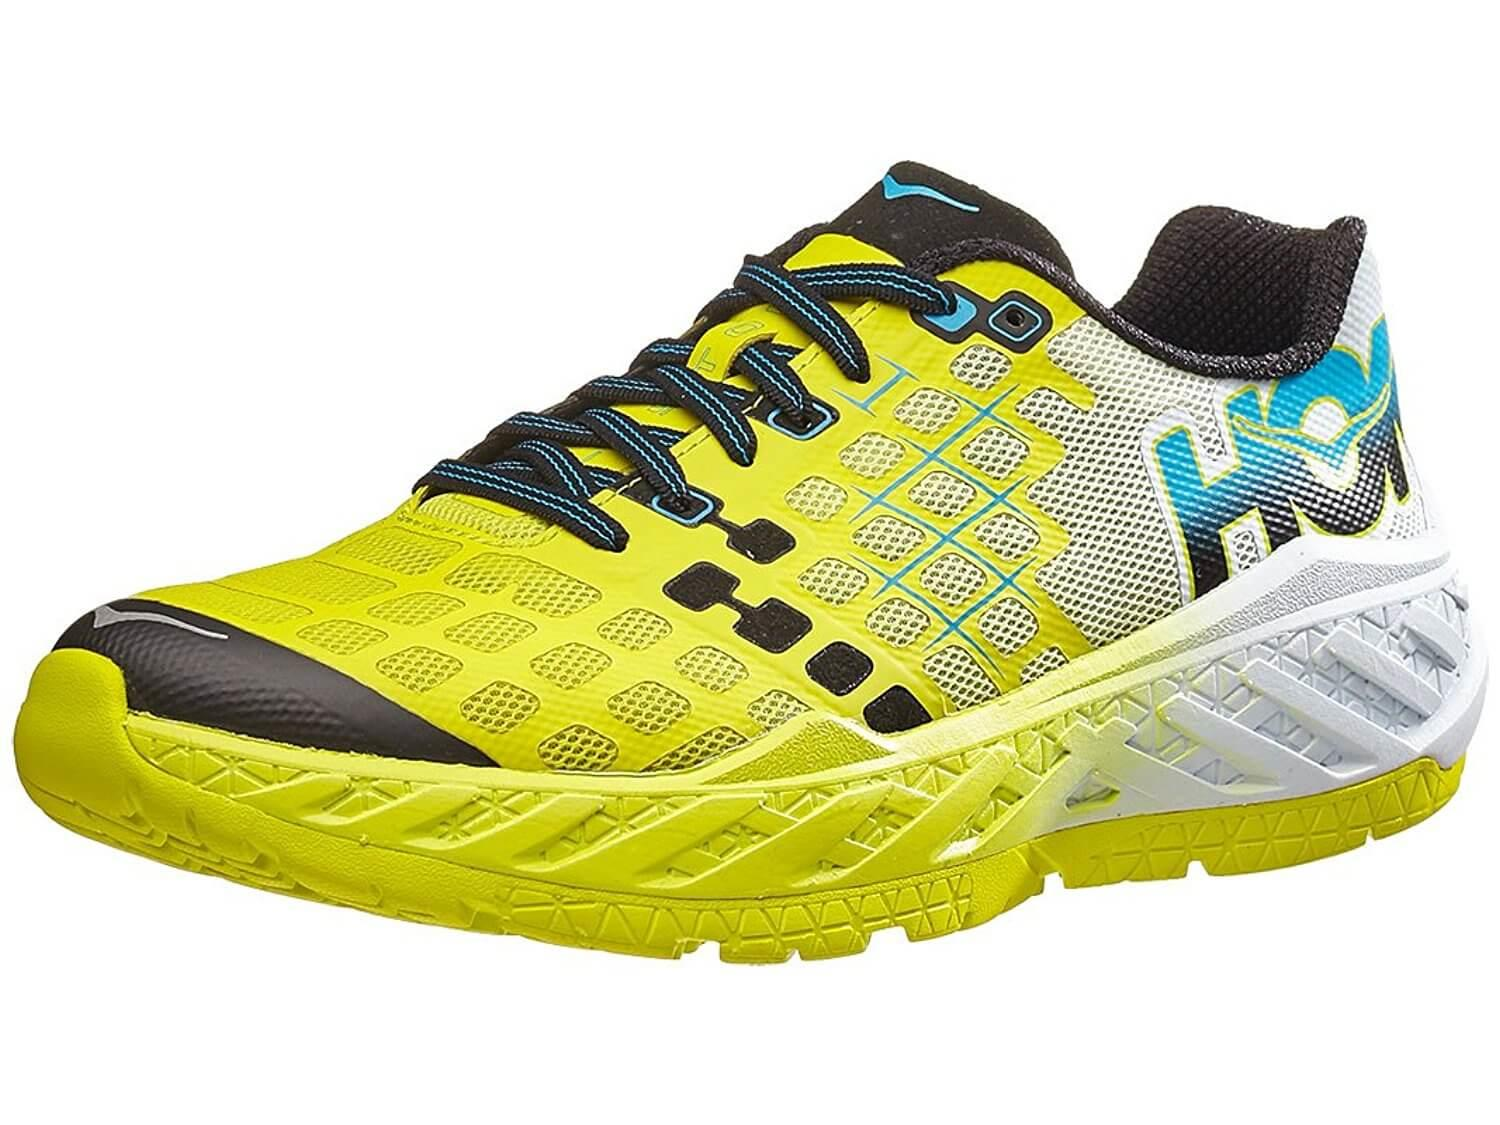 Best Trail Running Shoes South Africa